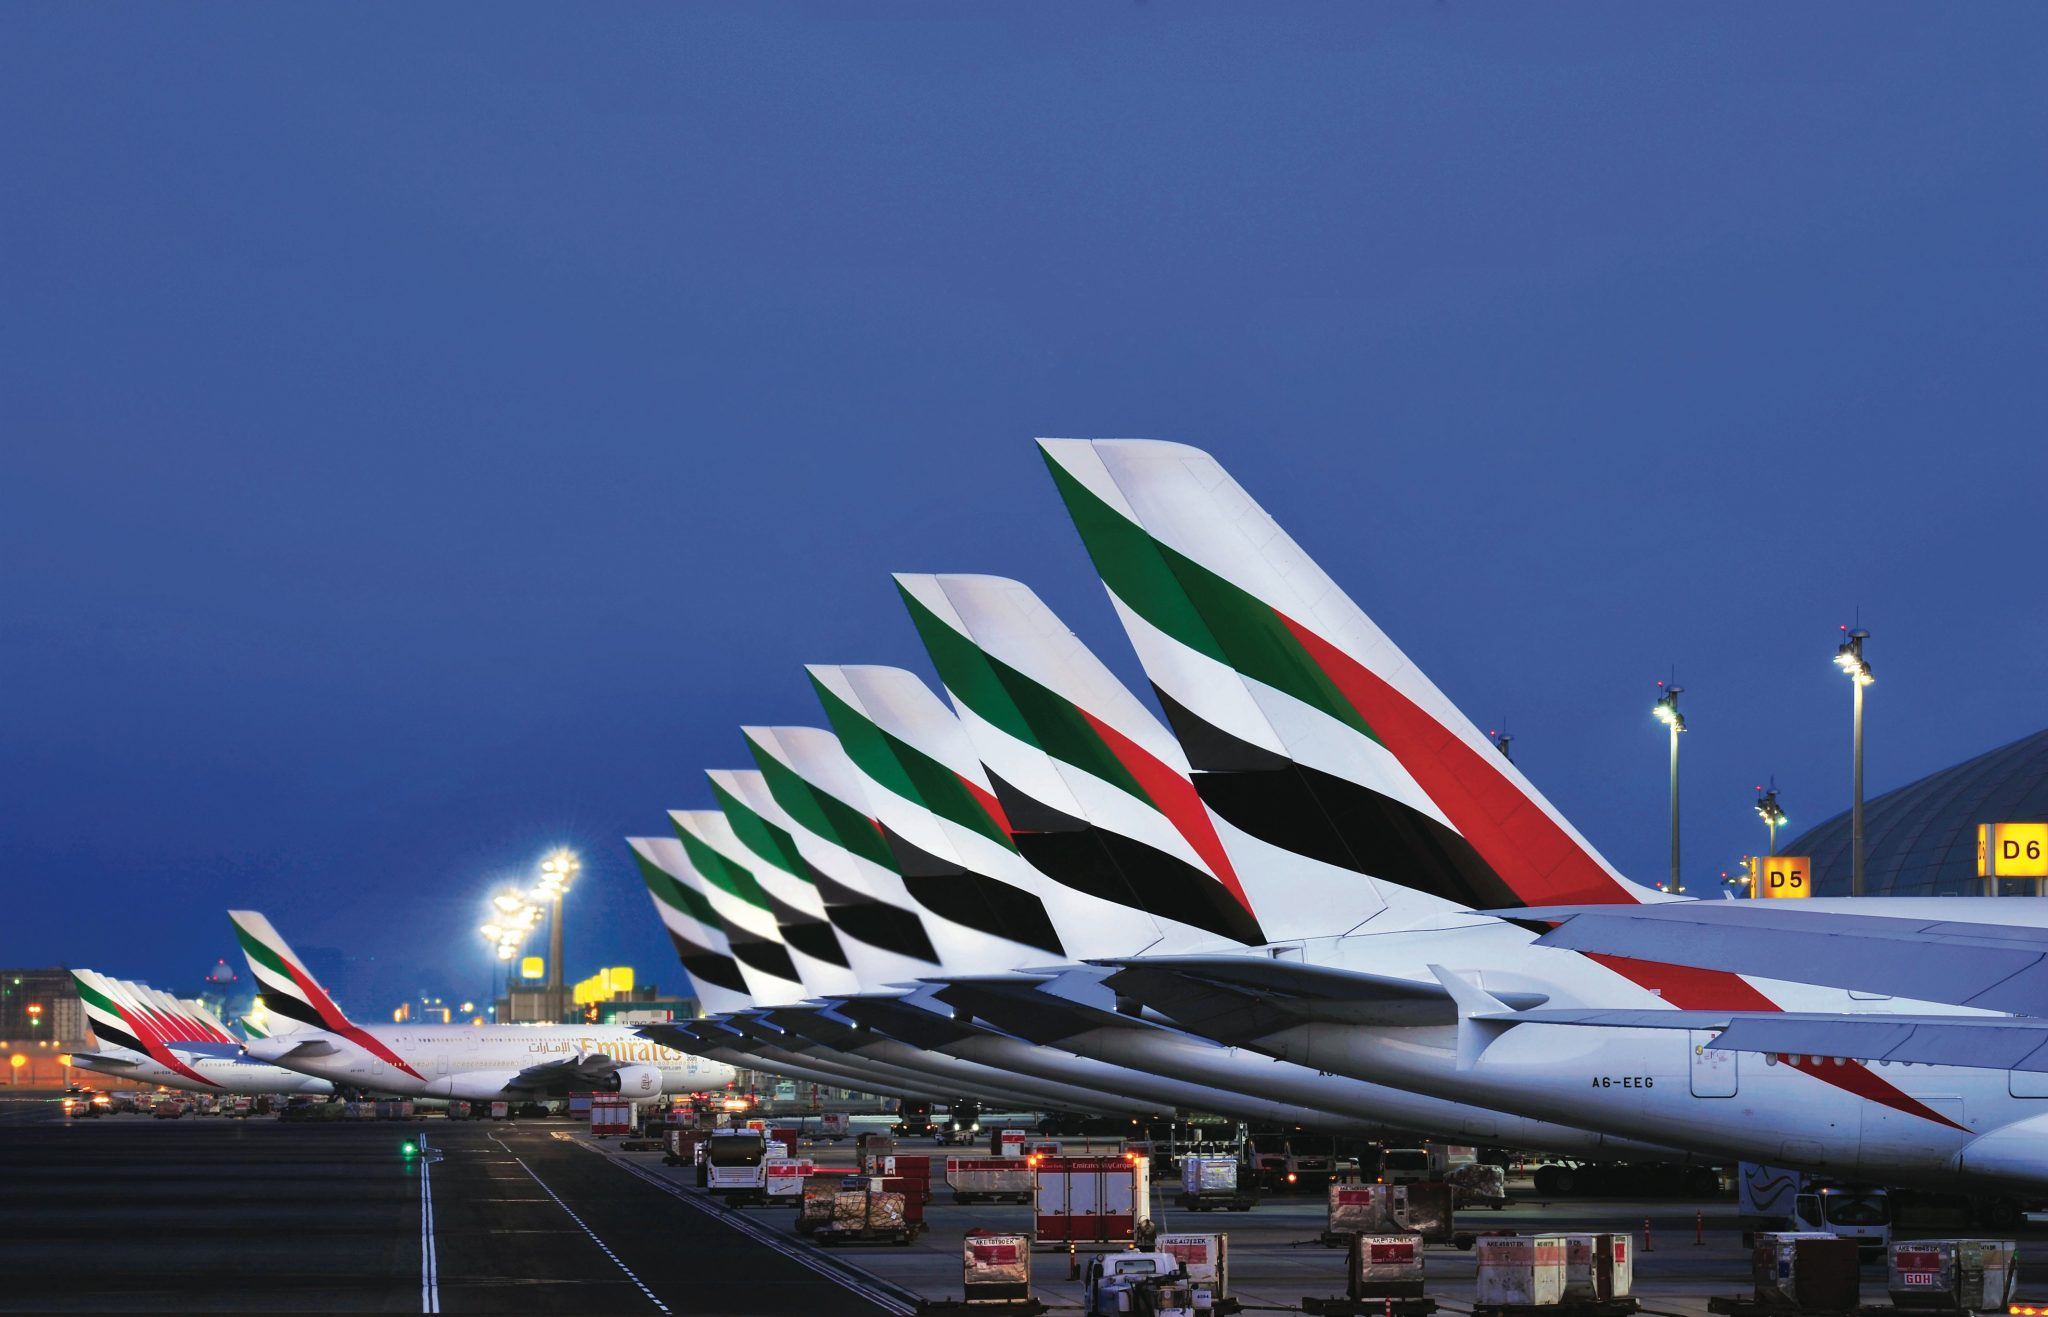 Emirates Cabin Crew Are To Receive A Welcome Pay Raise After Profits Jump 67% In One Year